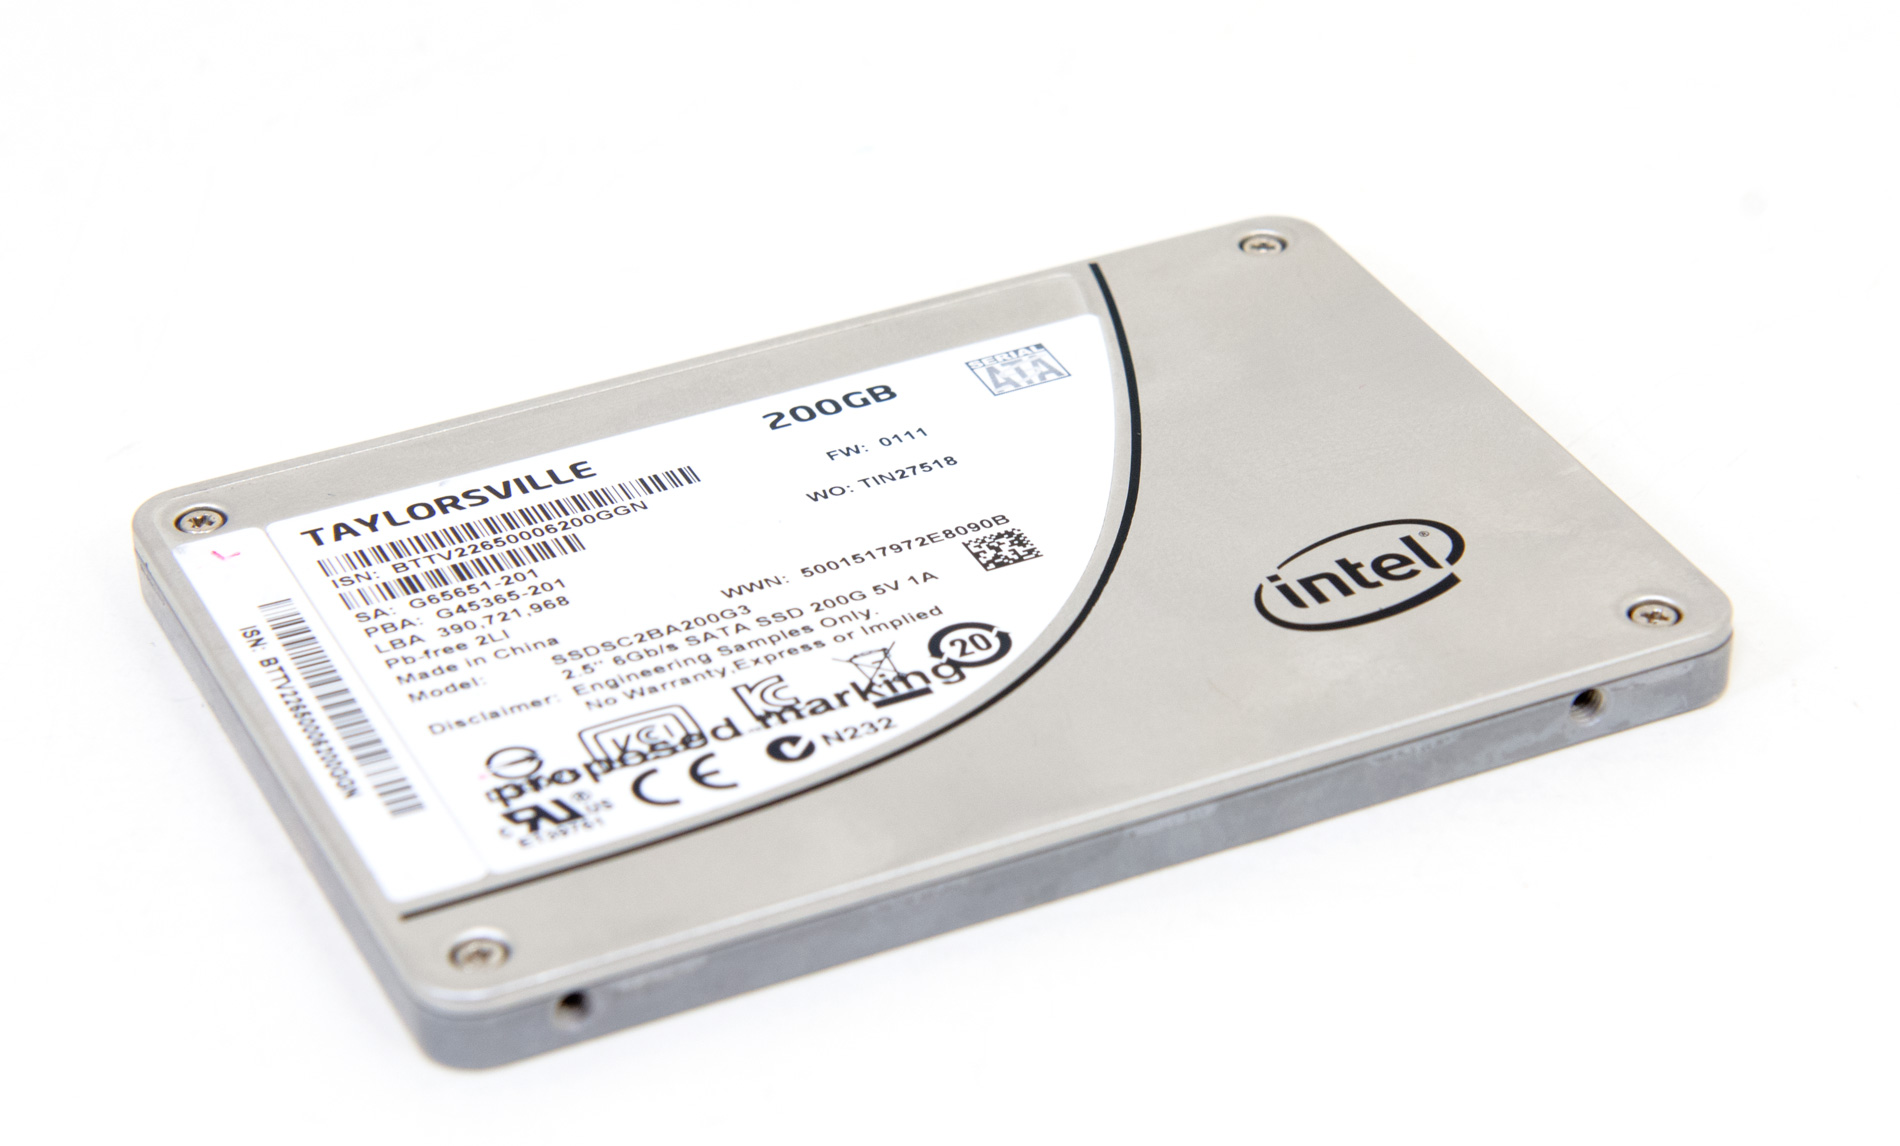 The Intel SSD DC S3700 (200GB) Review